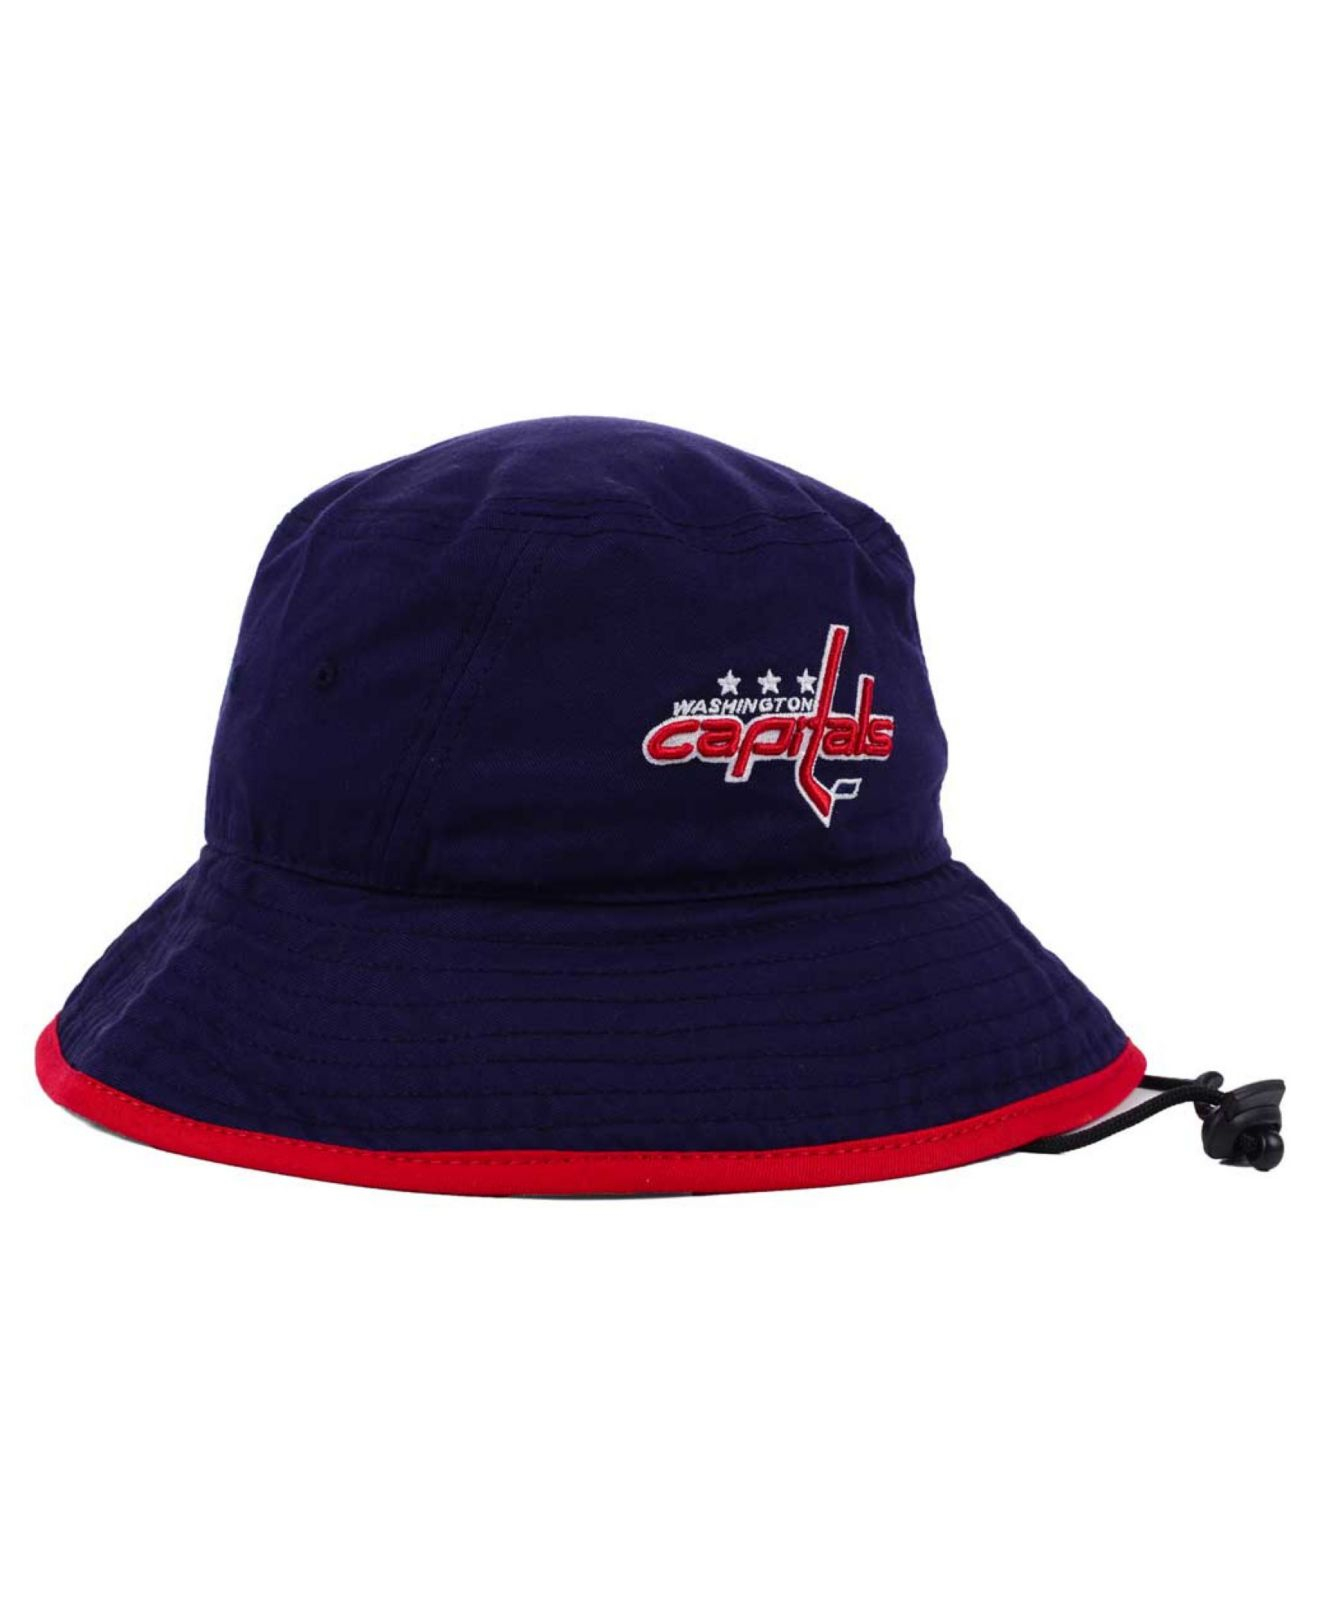 ... competitive price 33571 d83b2 Lyst - Ktz Washington Capitals Basic  Tipped Bucket Hat in Bl ... fe8e92328bd